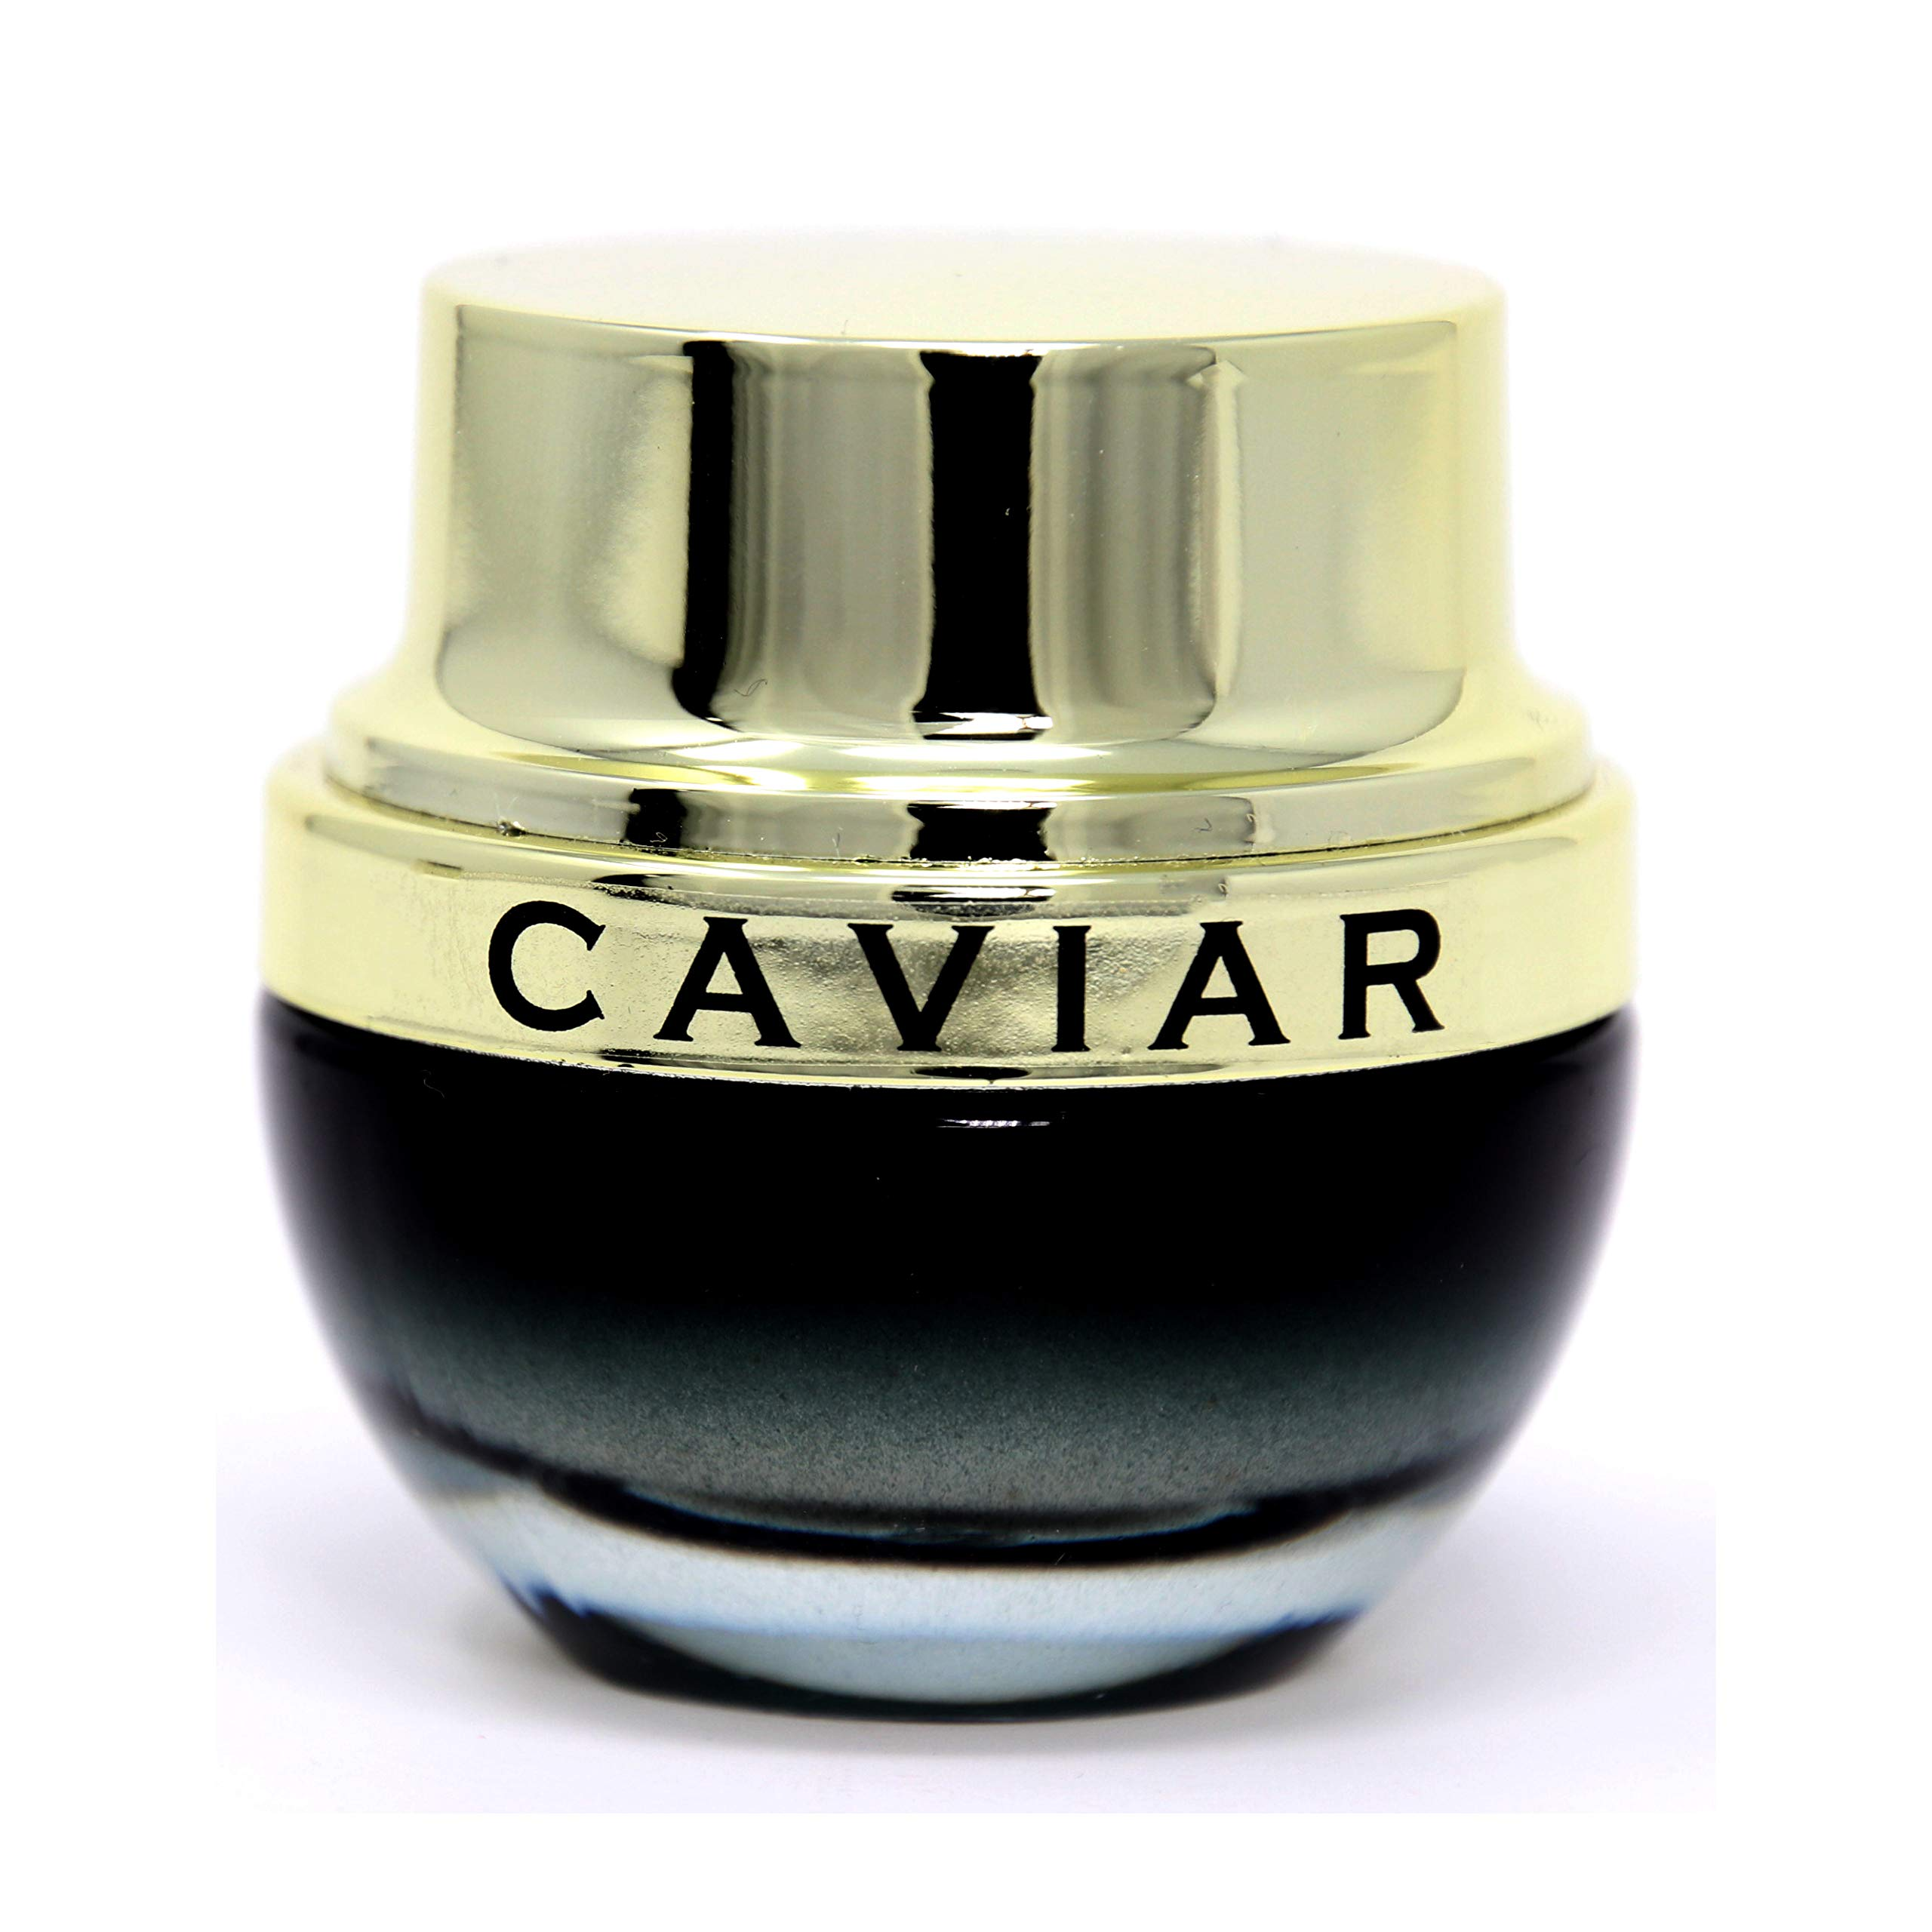 LuxDR Caviar Rx Cream for Luxury Handbags Epsom Togo and Chanel Caviar Saffiano - Revive, Replenish and Protect (30ml) by MISLUX